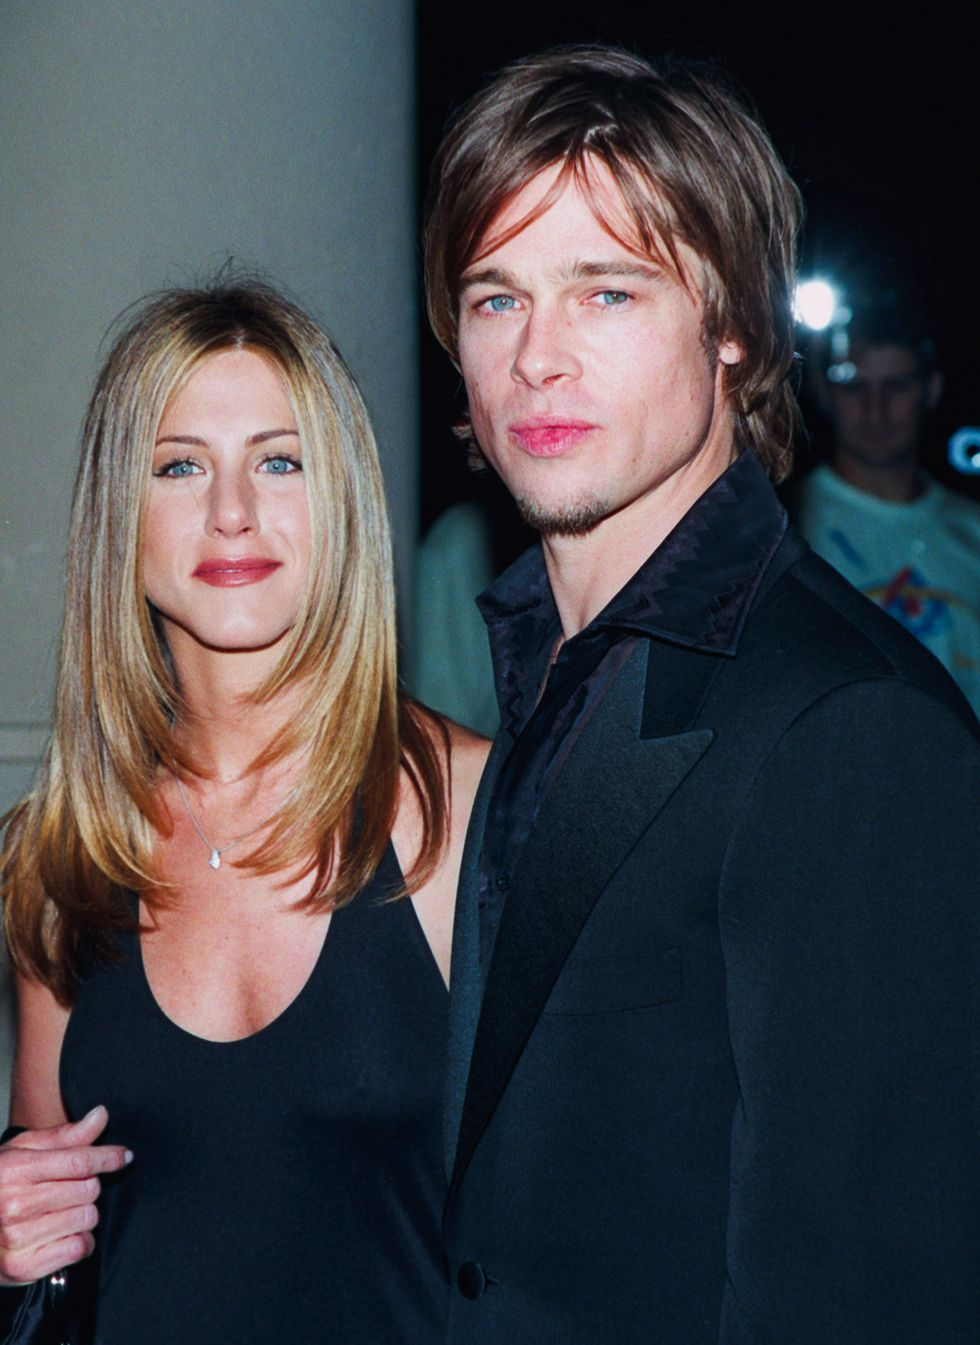 """Relive Brad Pitt and Jennifer Aniston's Romance, From the '90s to Their  """"Flirtatious"""" Current Relationship in 2021 